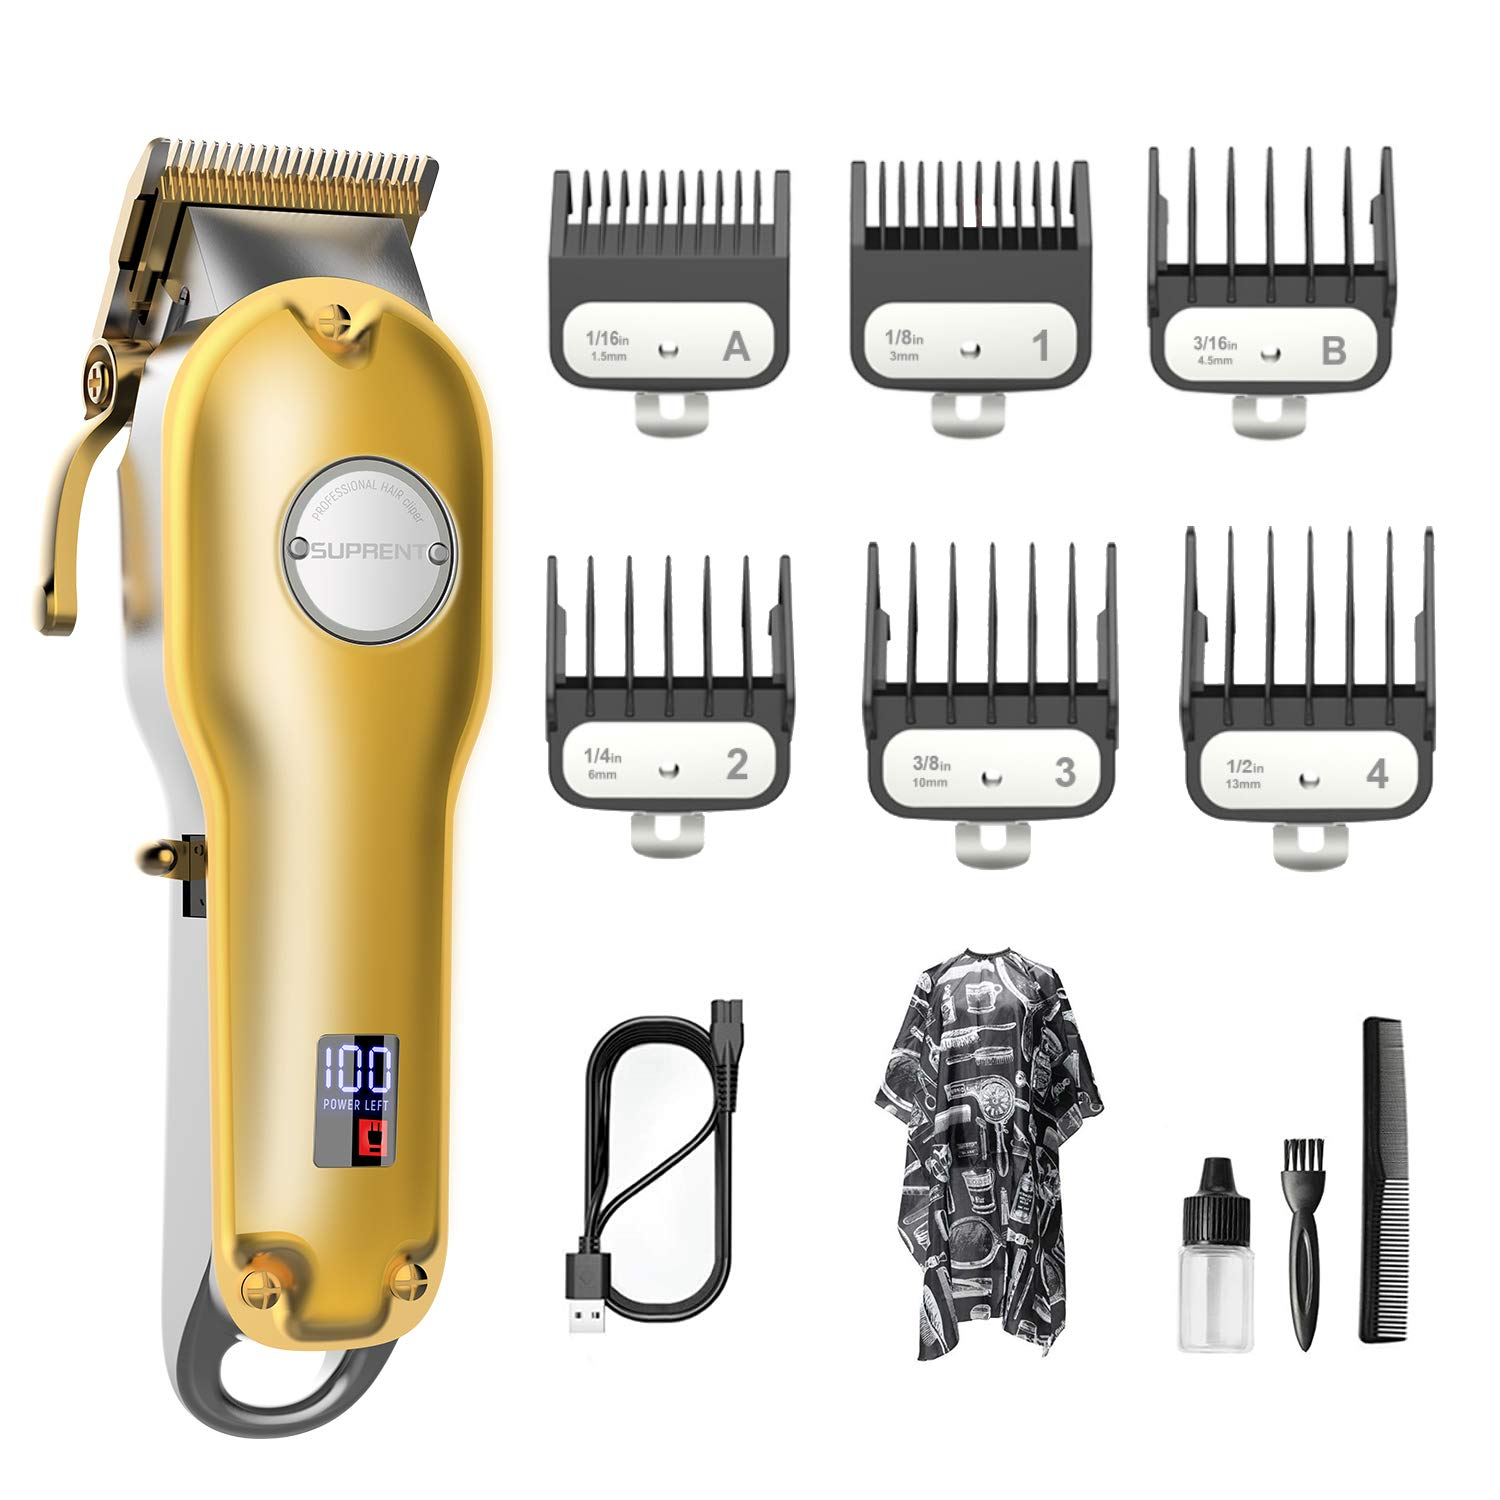 Hair Clippers for Men Professional SUPRENT 5 hrs Cordless Hair Clippers, Hair Cutting For Home Barber Salon,Hair Trimmer For Men, Women & Kids, Haircut Kit For Rechargeable LED Display, Gold